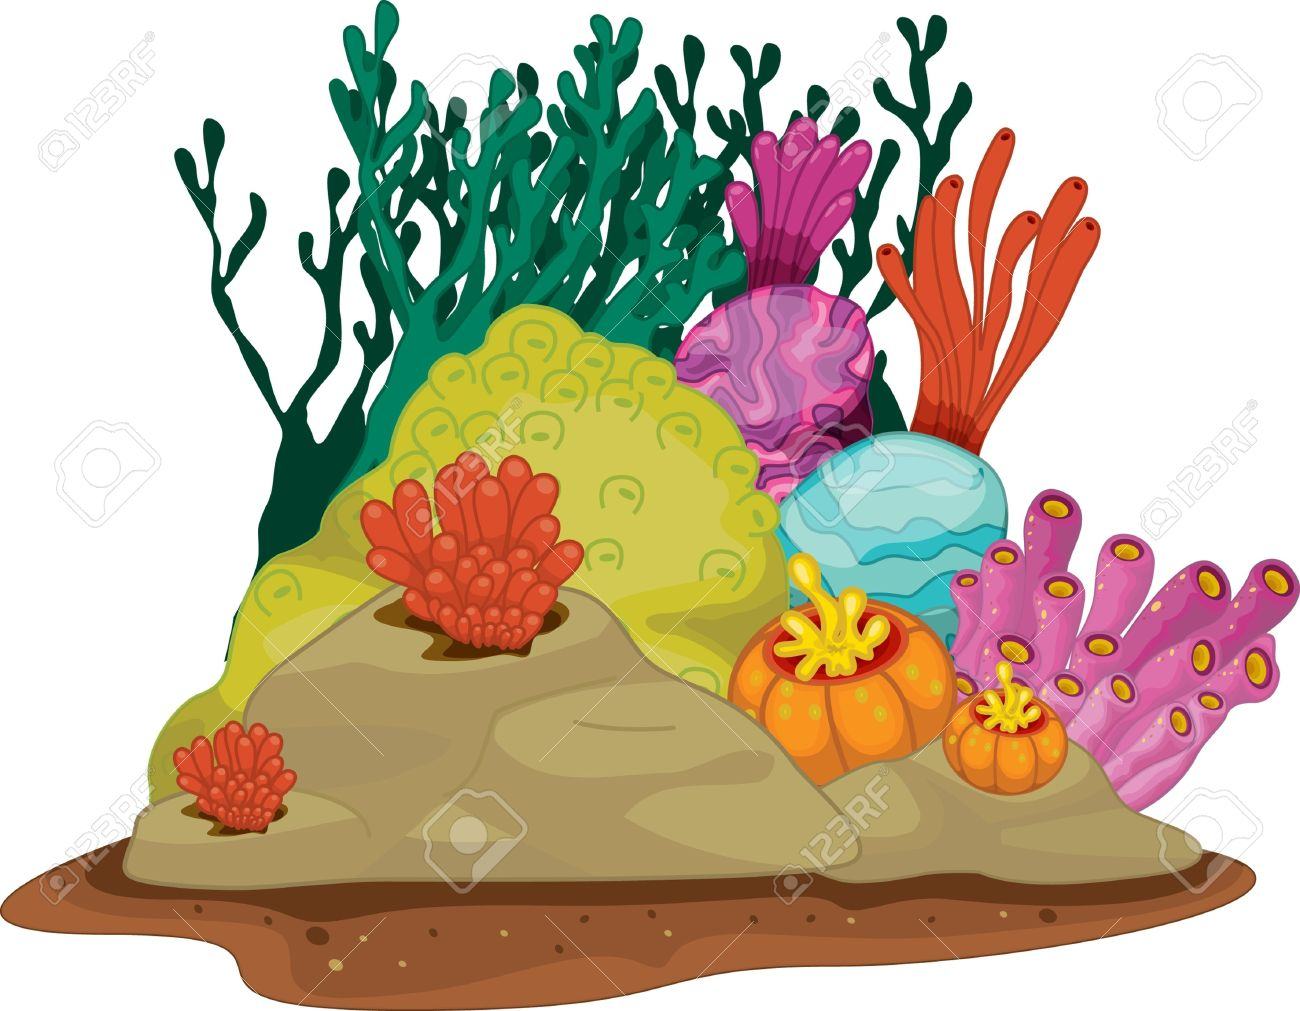 Free Sea Plants Cliparts, Download Free Clip Art, Free Clip.